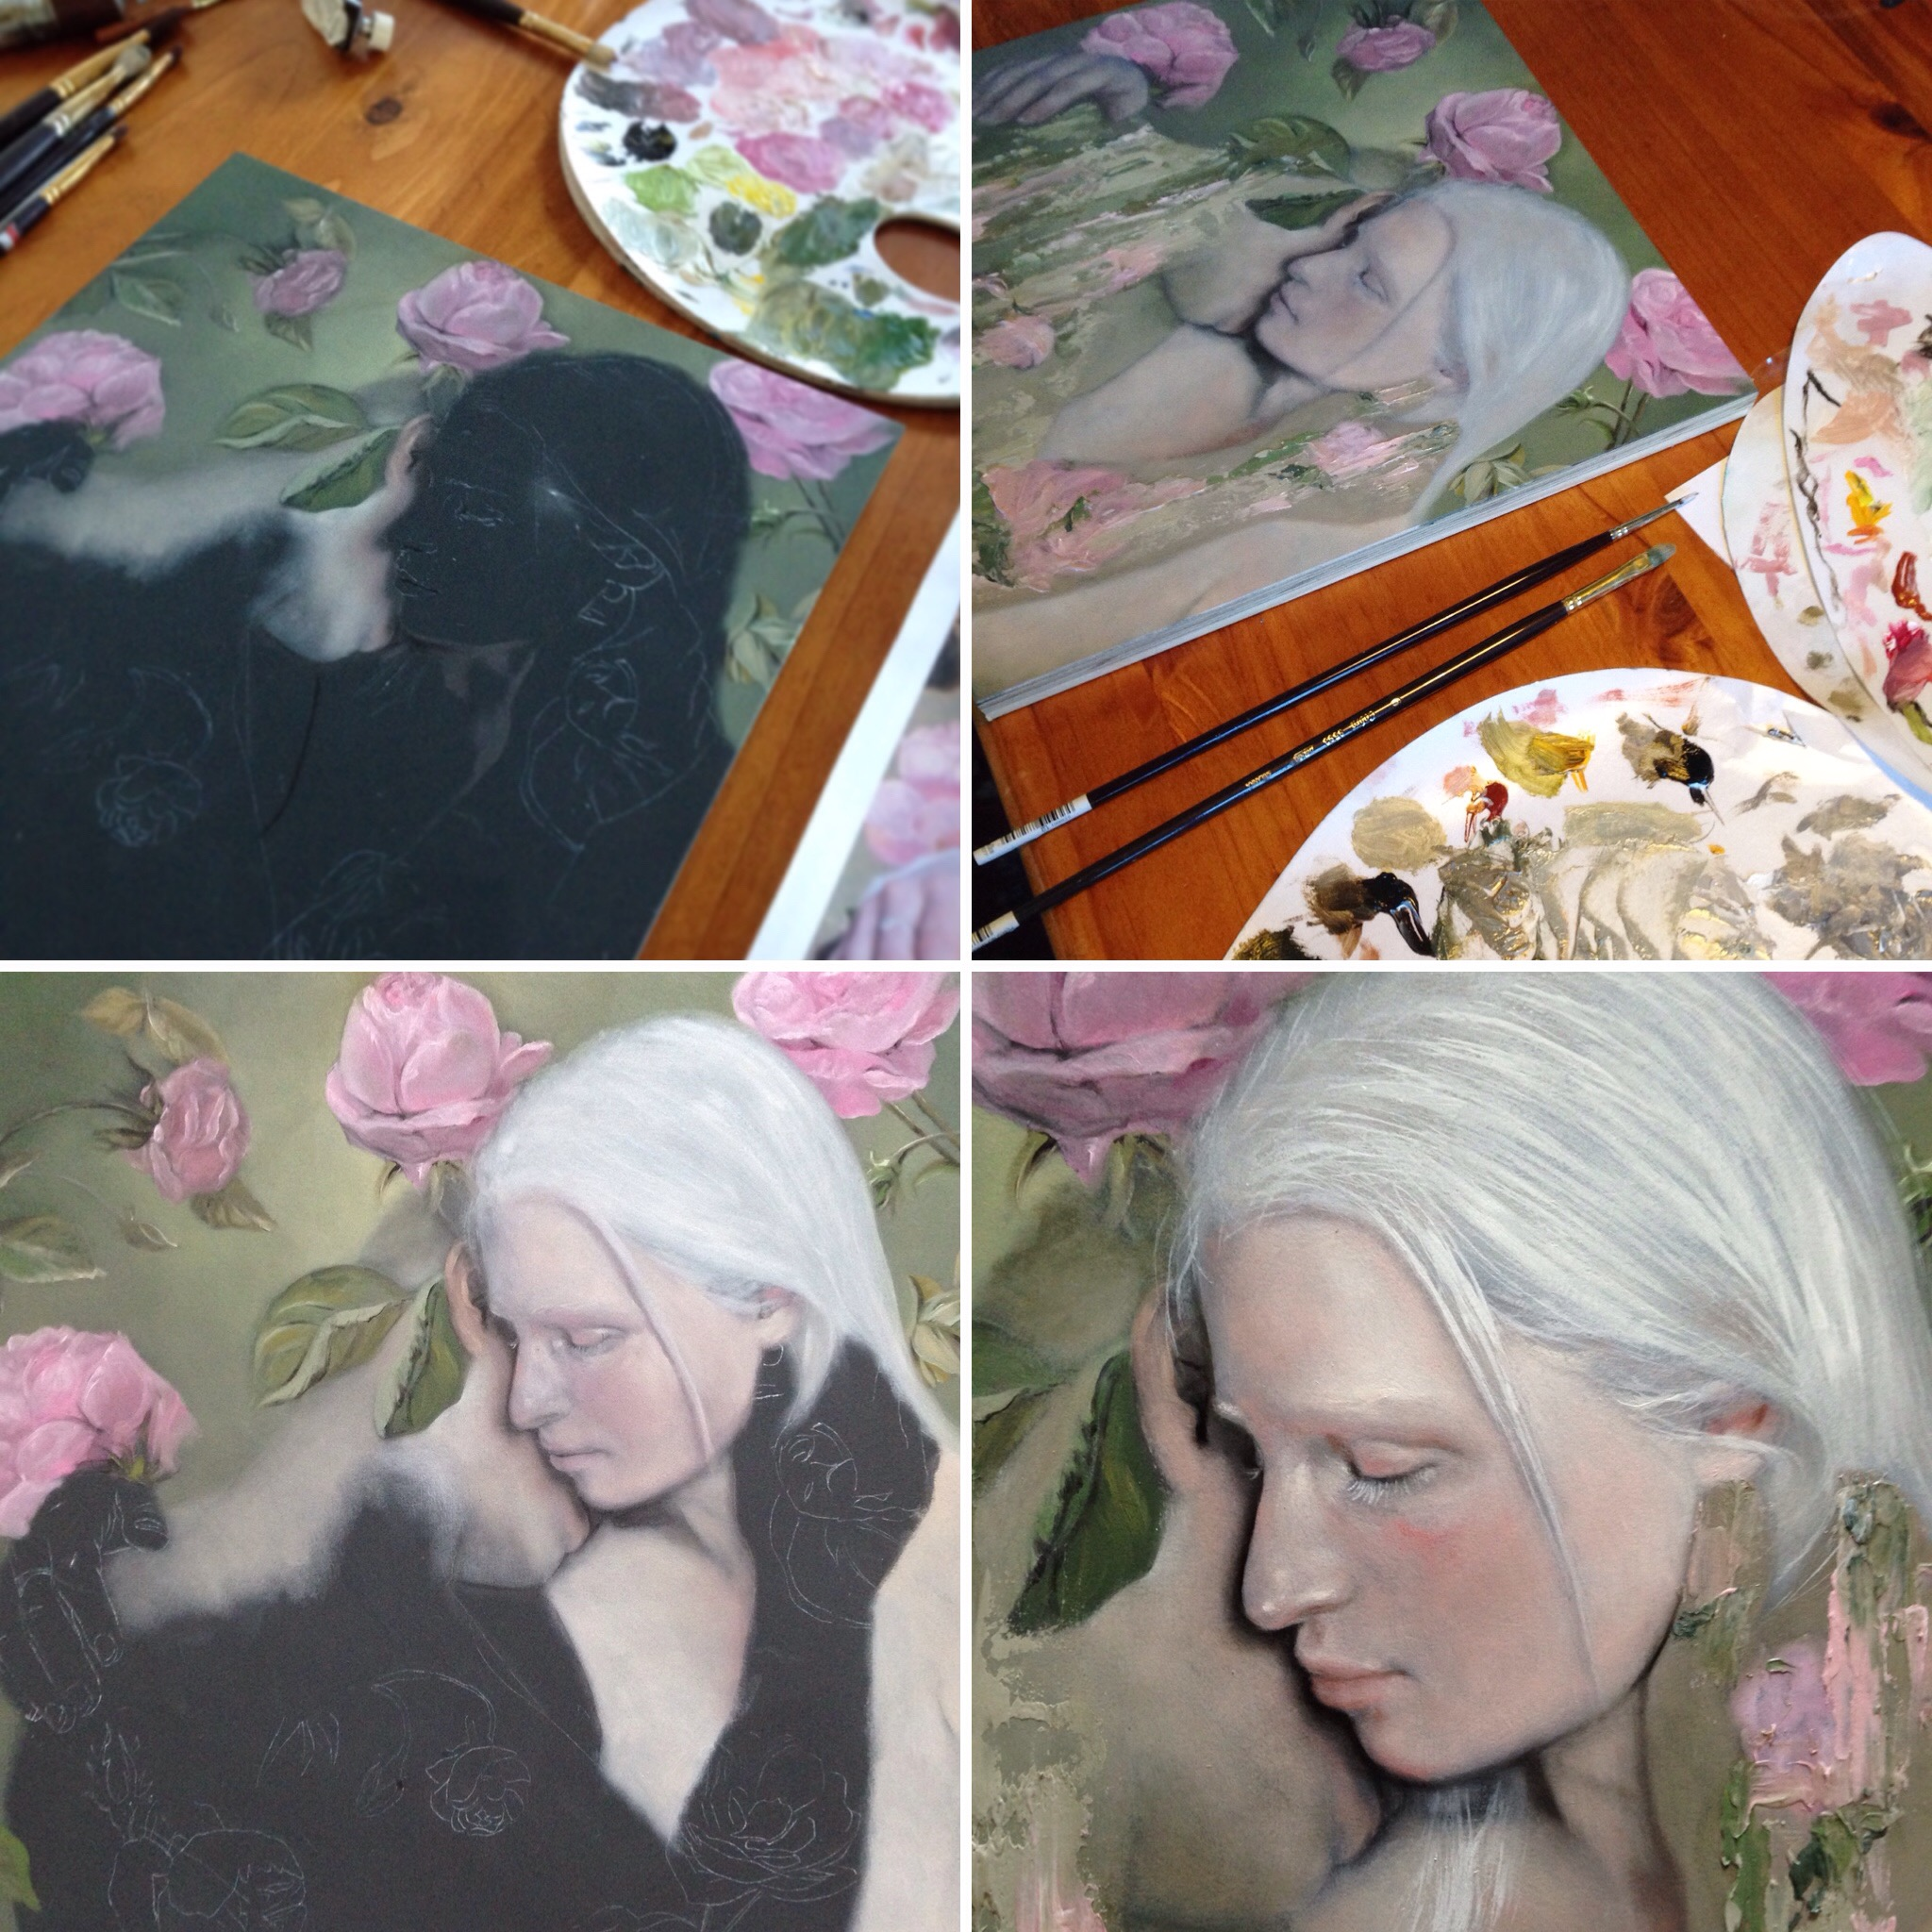 Work in progress shots of my piece. For sales enquiries please contact  Thinkspace